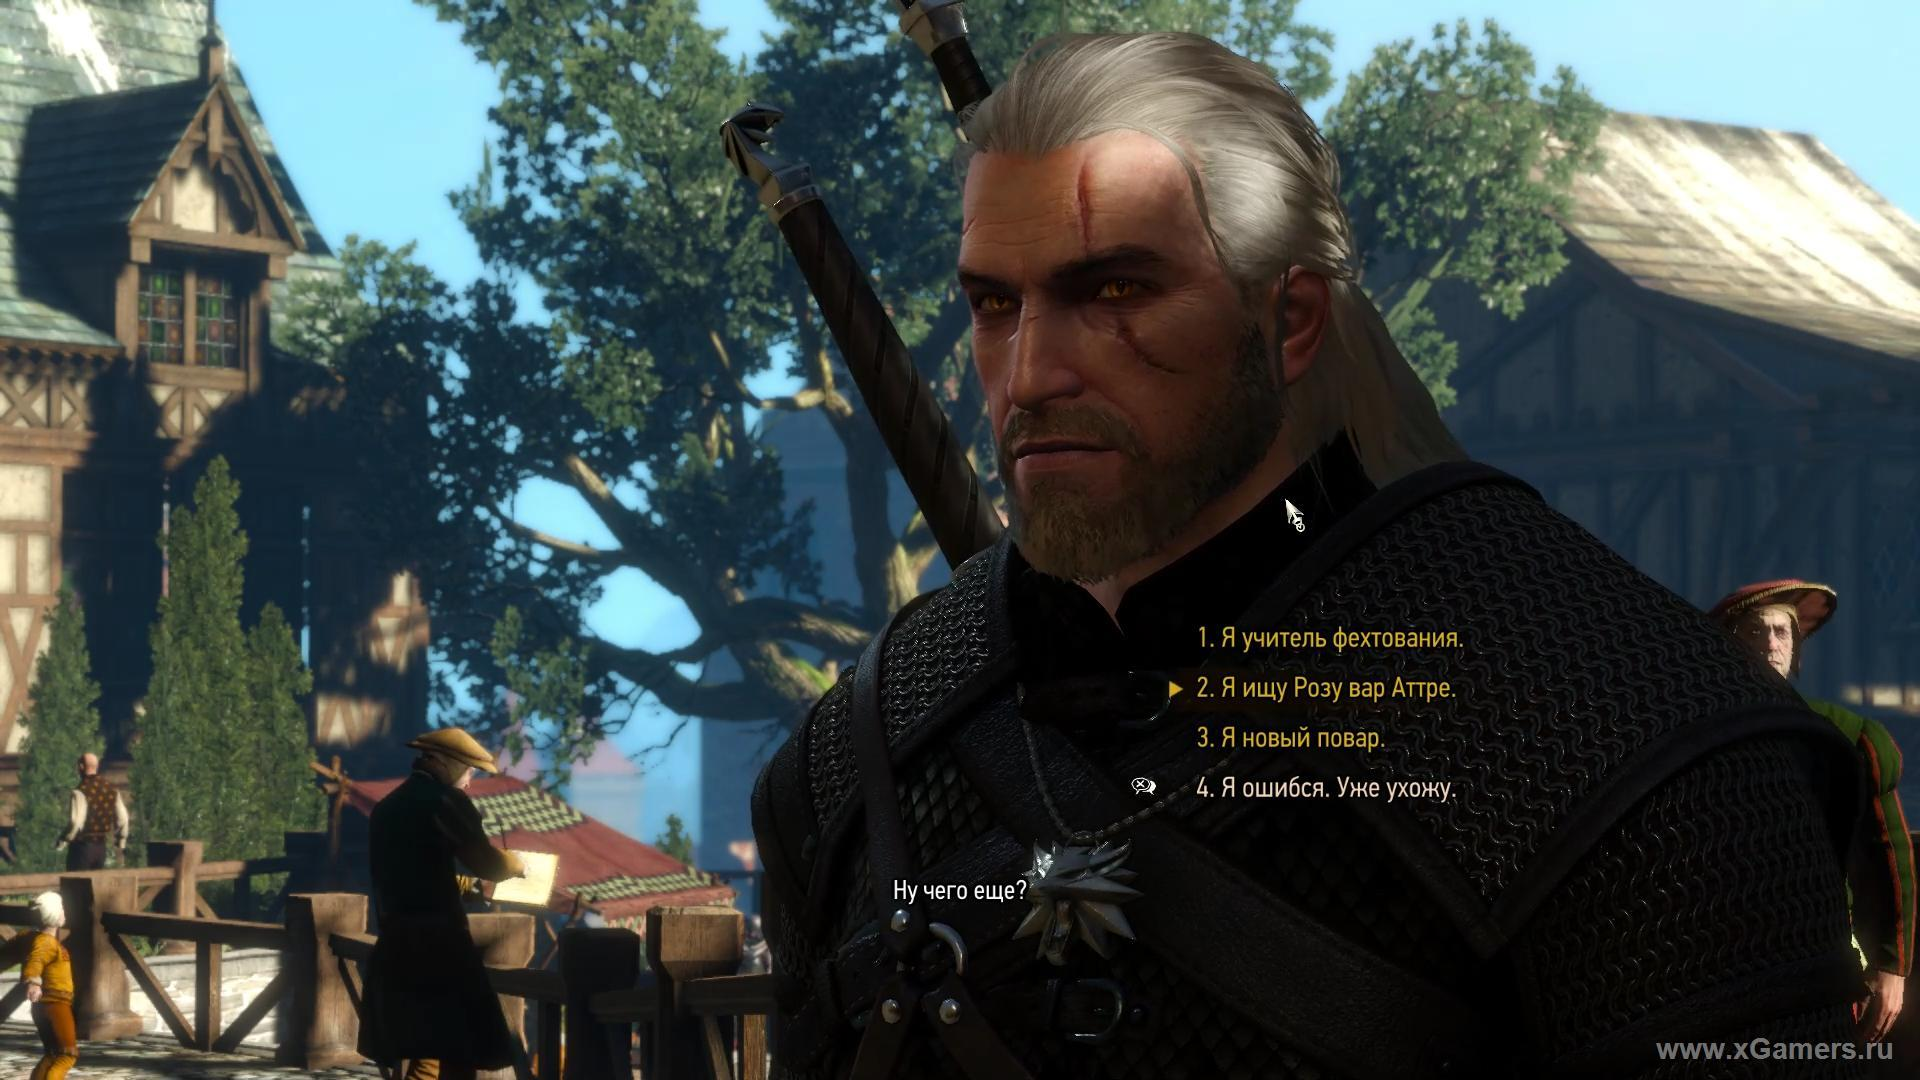 get to the villa Var Attre Witcher 3 - not allowed